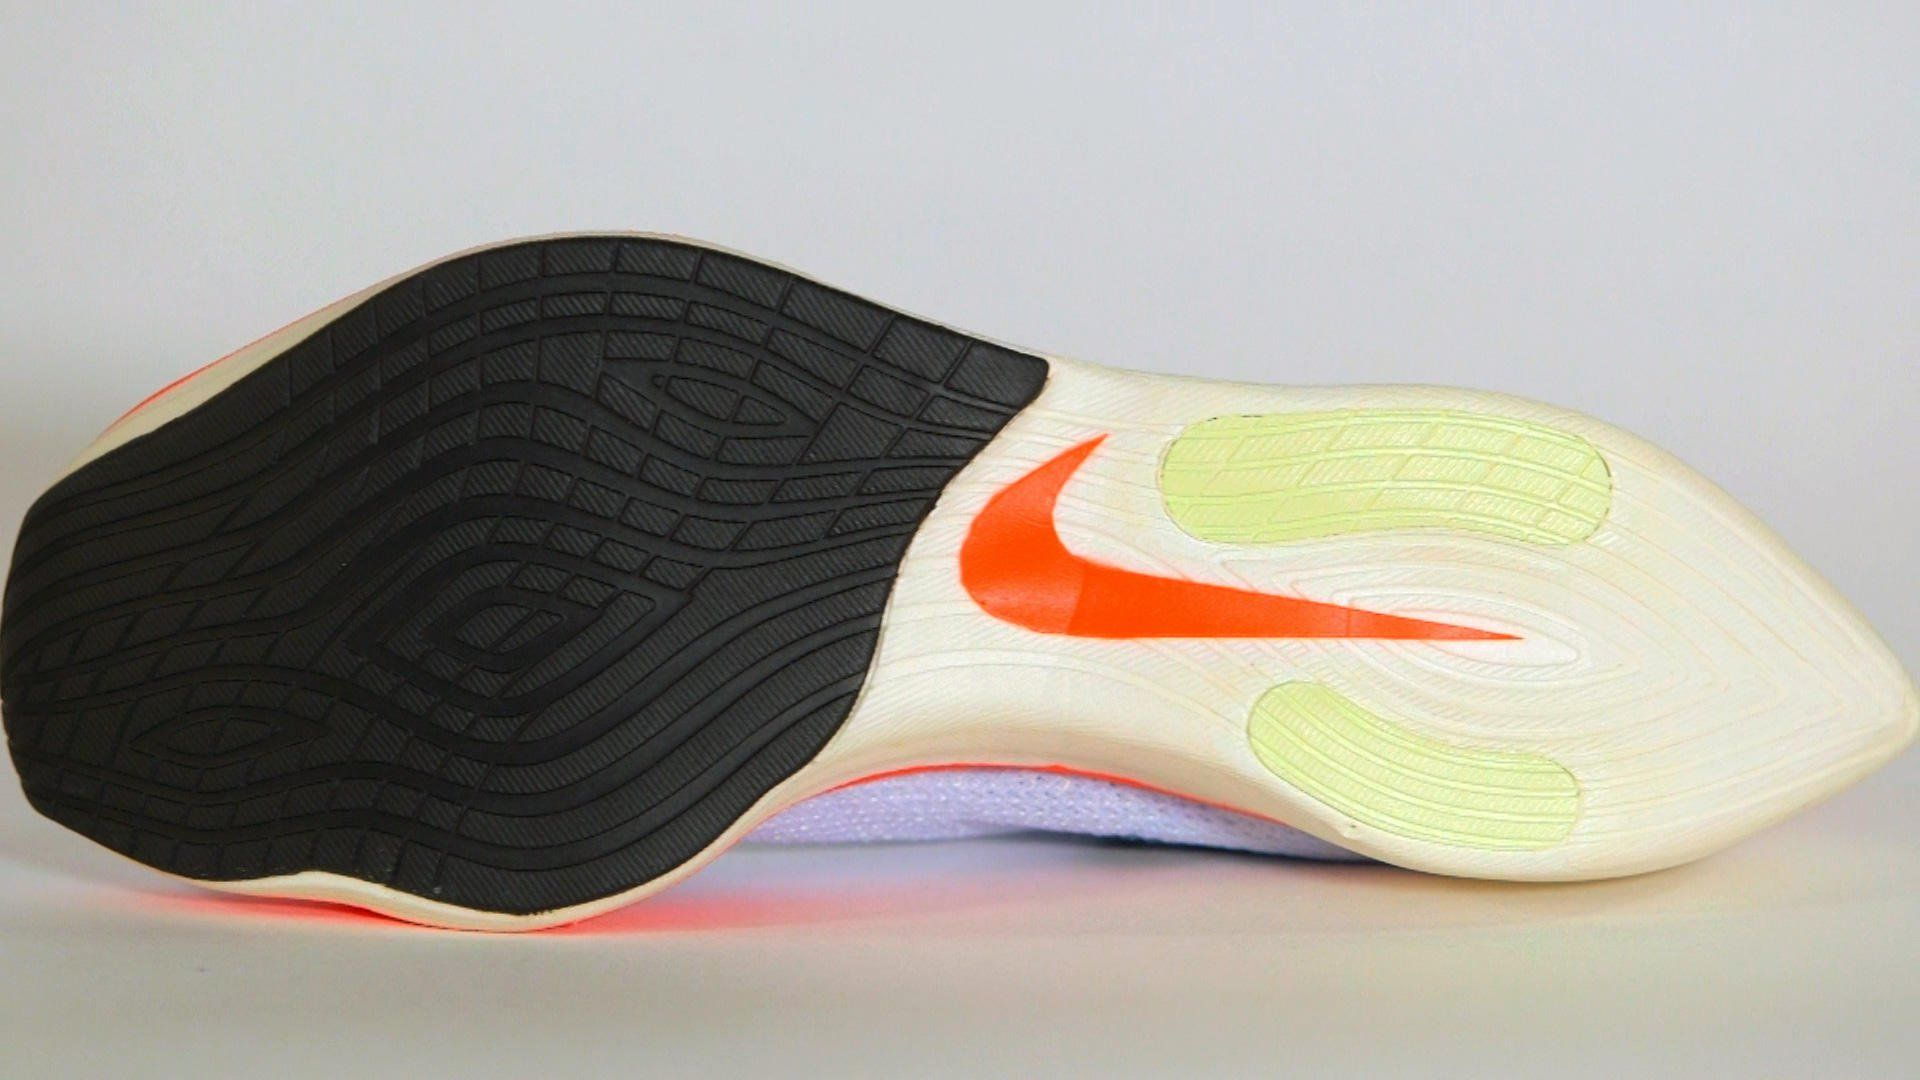 d9298409592 Is This the Shoe That Will Break 2 Hours in the Marathon  https